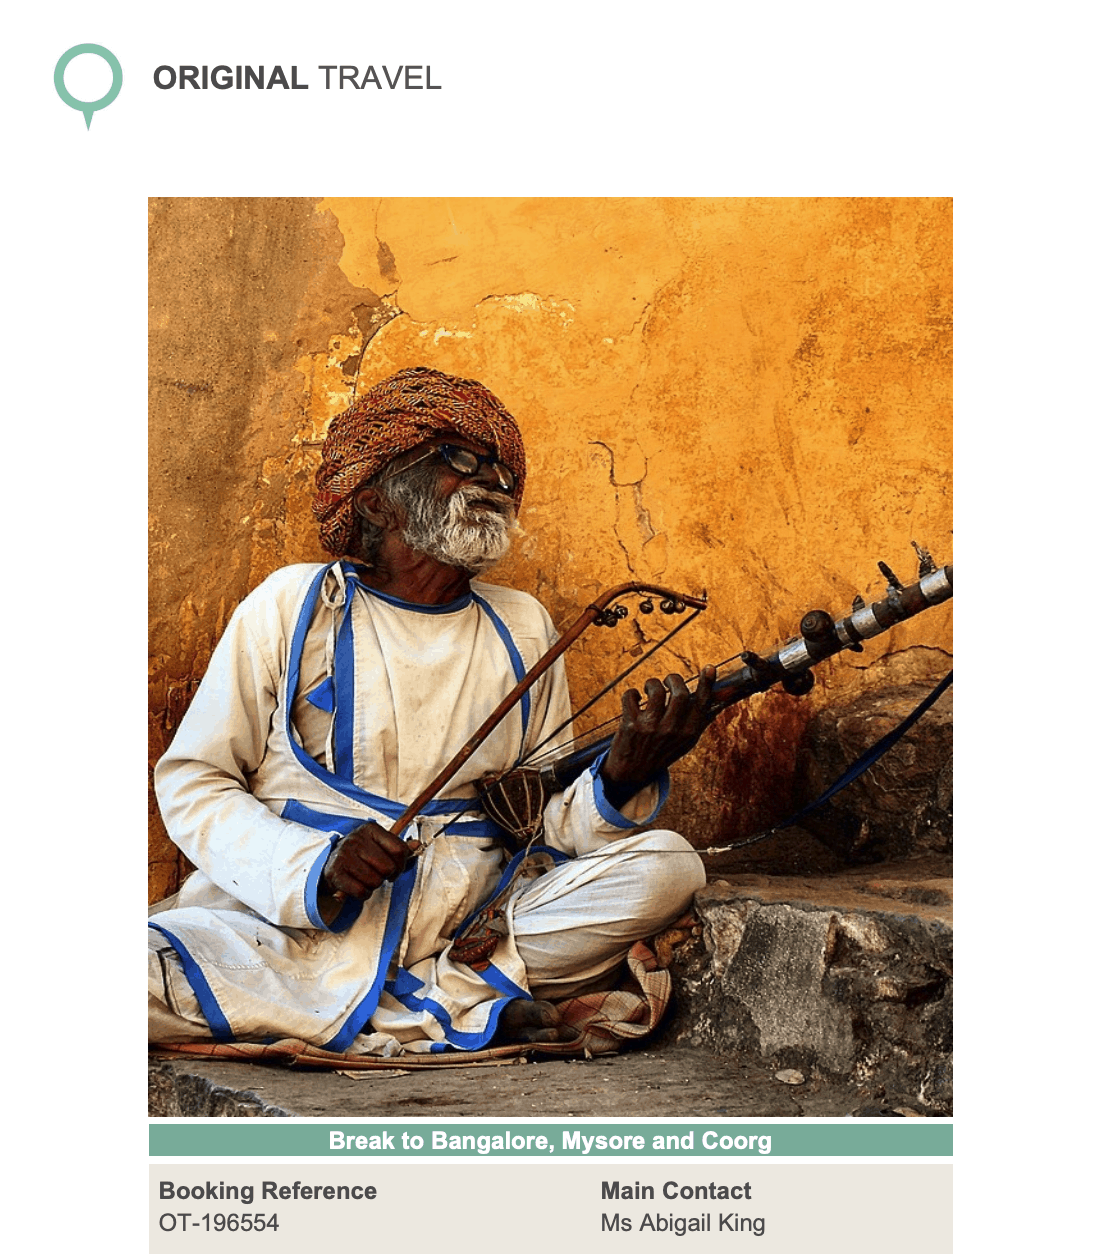 Original Travel India Itinerary